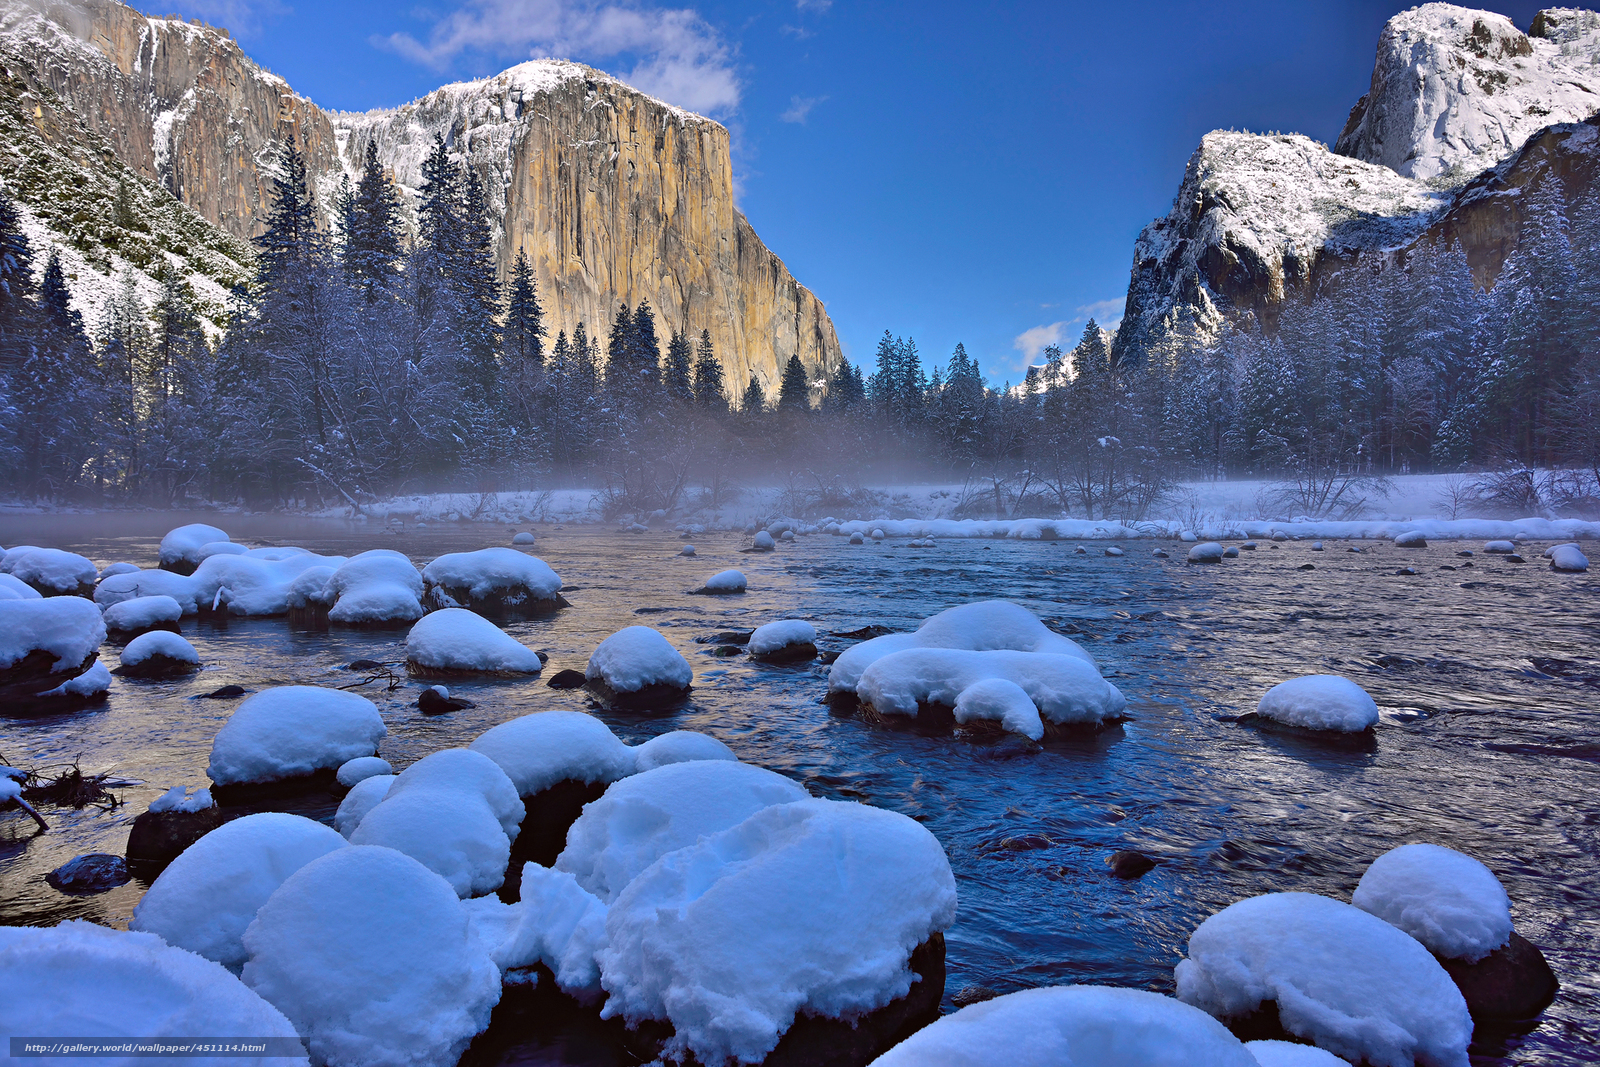 Download wallpaper USA Yosemite National Park yosemite national park 1600x1067